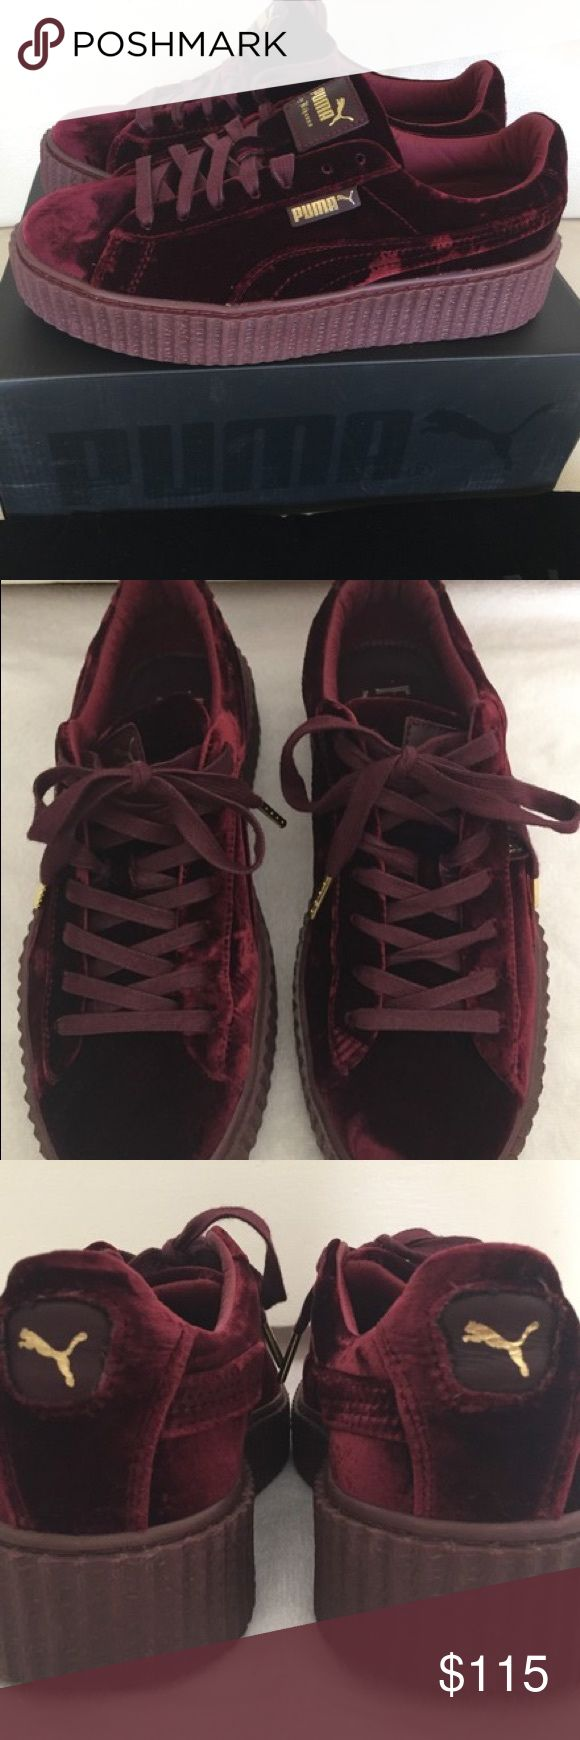 Rihanna Fenty Creepers RARE Rihanna velvet Creepers. Comes with box. Great condition. Can be dressed up or down. Puma Shoes